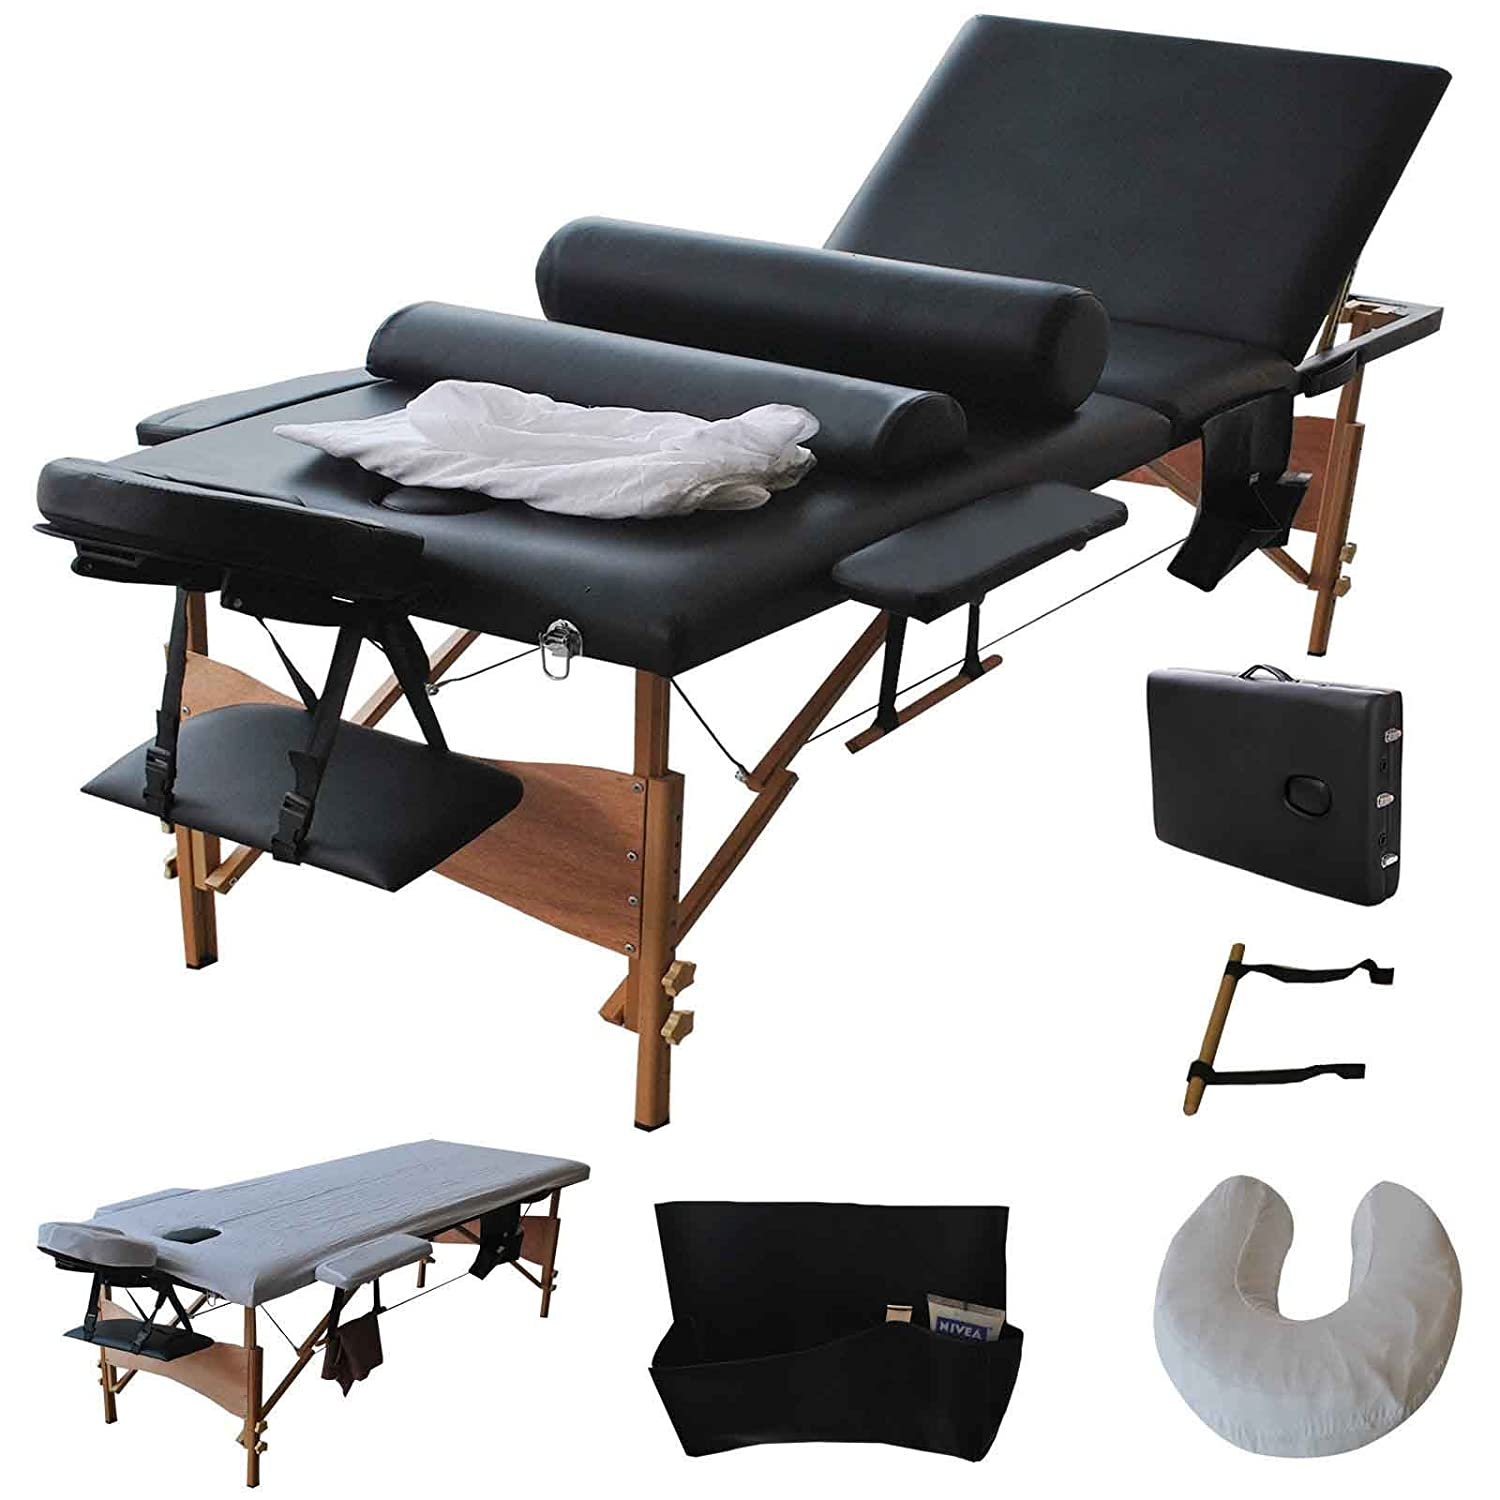 Reinforcement 84 L Professional Massage Table, Adjustable Portable Folding Massage Bed for Salon Beauty Physiotherapy Facial SPA Tattoo Household 3 Section, Black